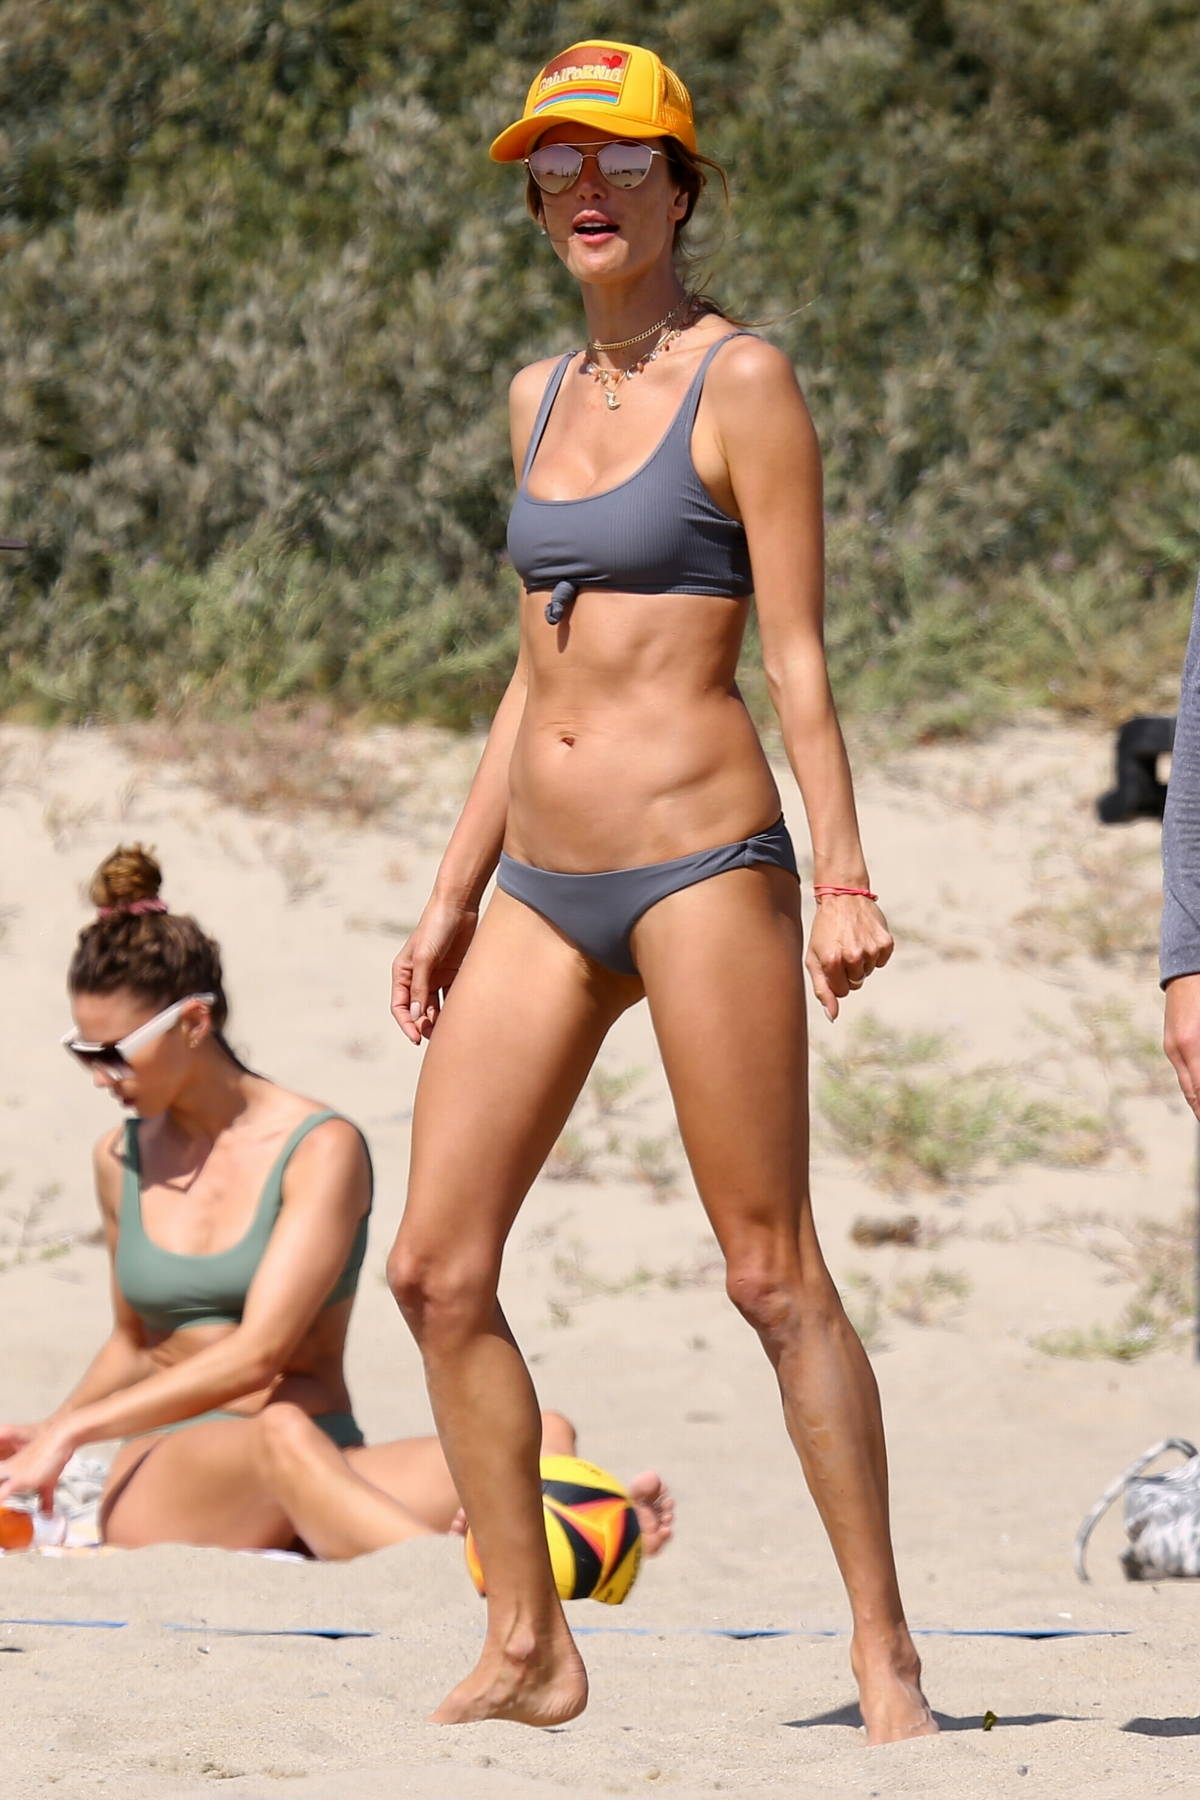 Alessandra Ambrosio flaunts her flawless figure in a grey bikini during a beach volleyball game in Malibu, California